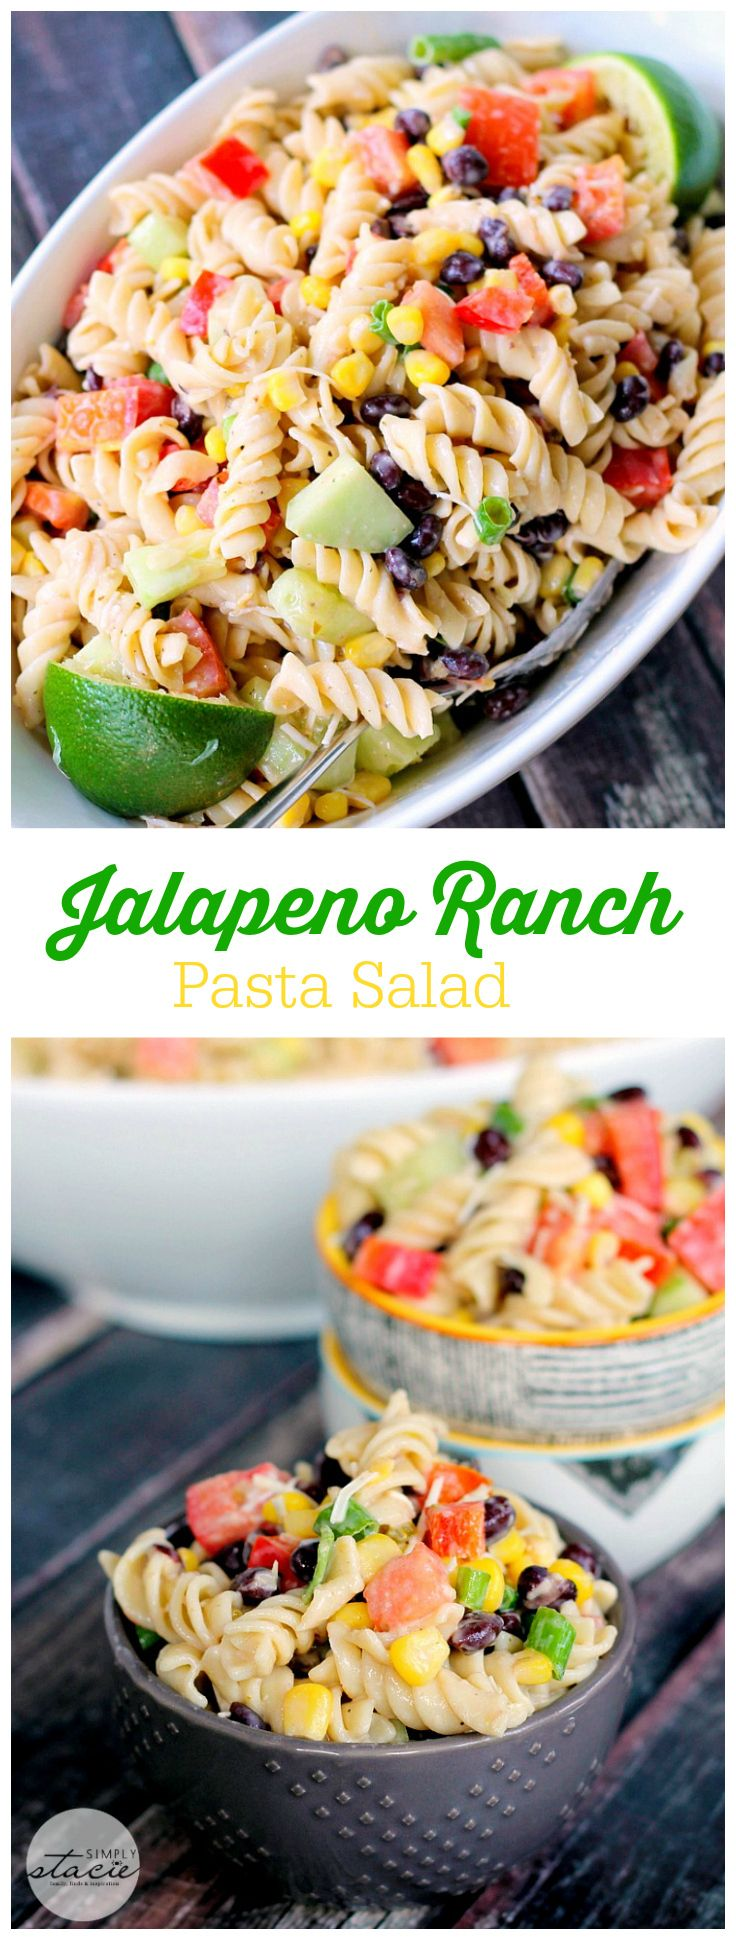 Jalapeno Ranch Pasta Salad - Smothered in a creamy, homemade ranch dressing with a kick of flavour. It's loaded with veggies and black beans to give it a southwest edge.